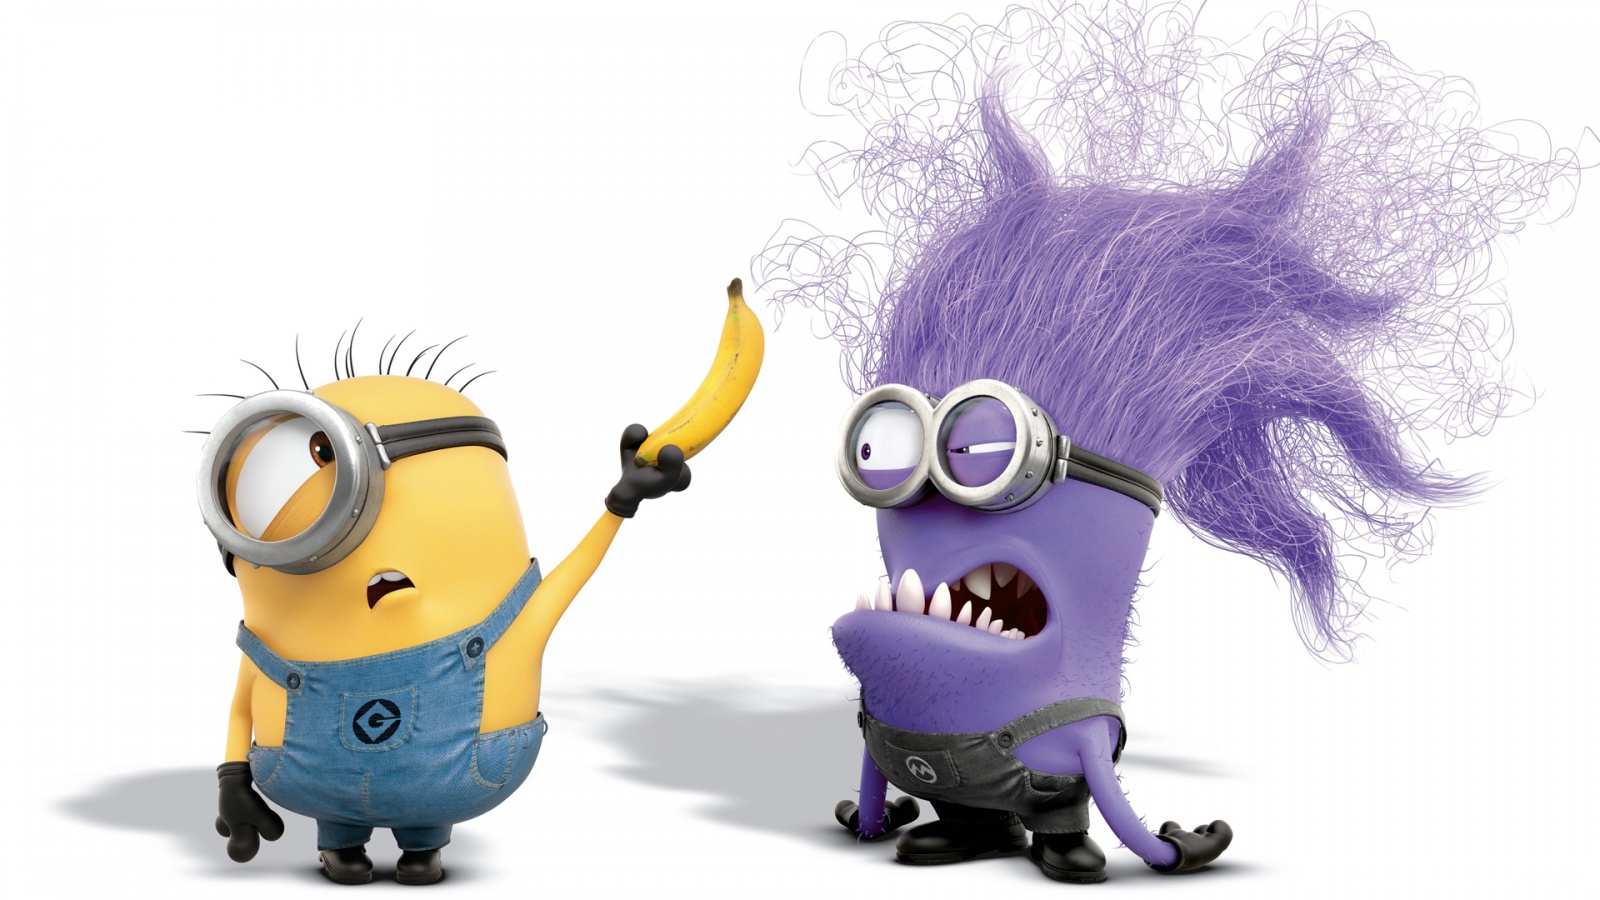 Funny Minions Wallpaper HD Wallpaper with 1600900 Resolution 1600x900